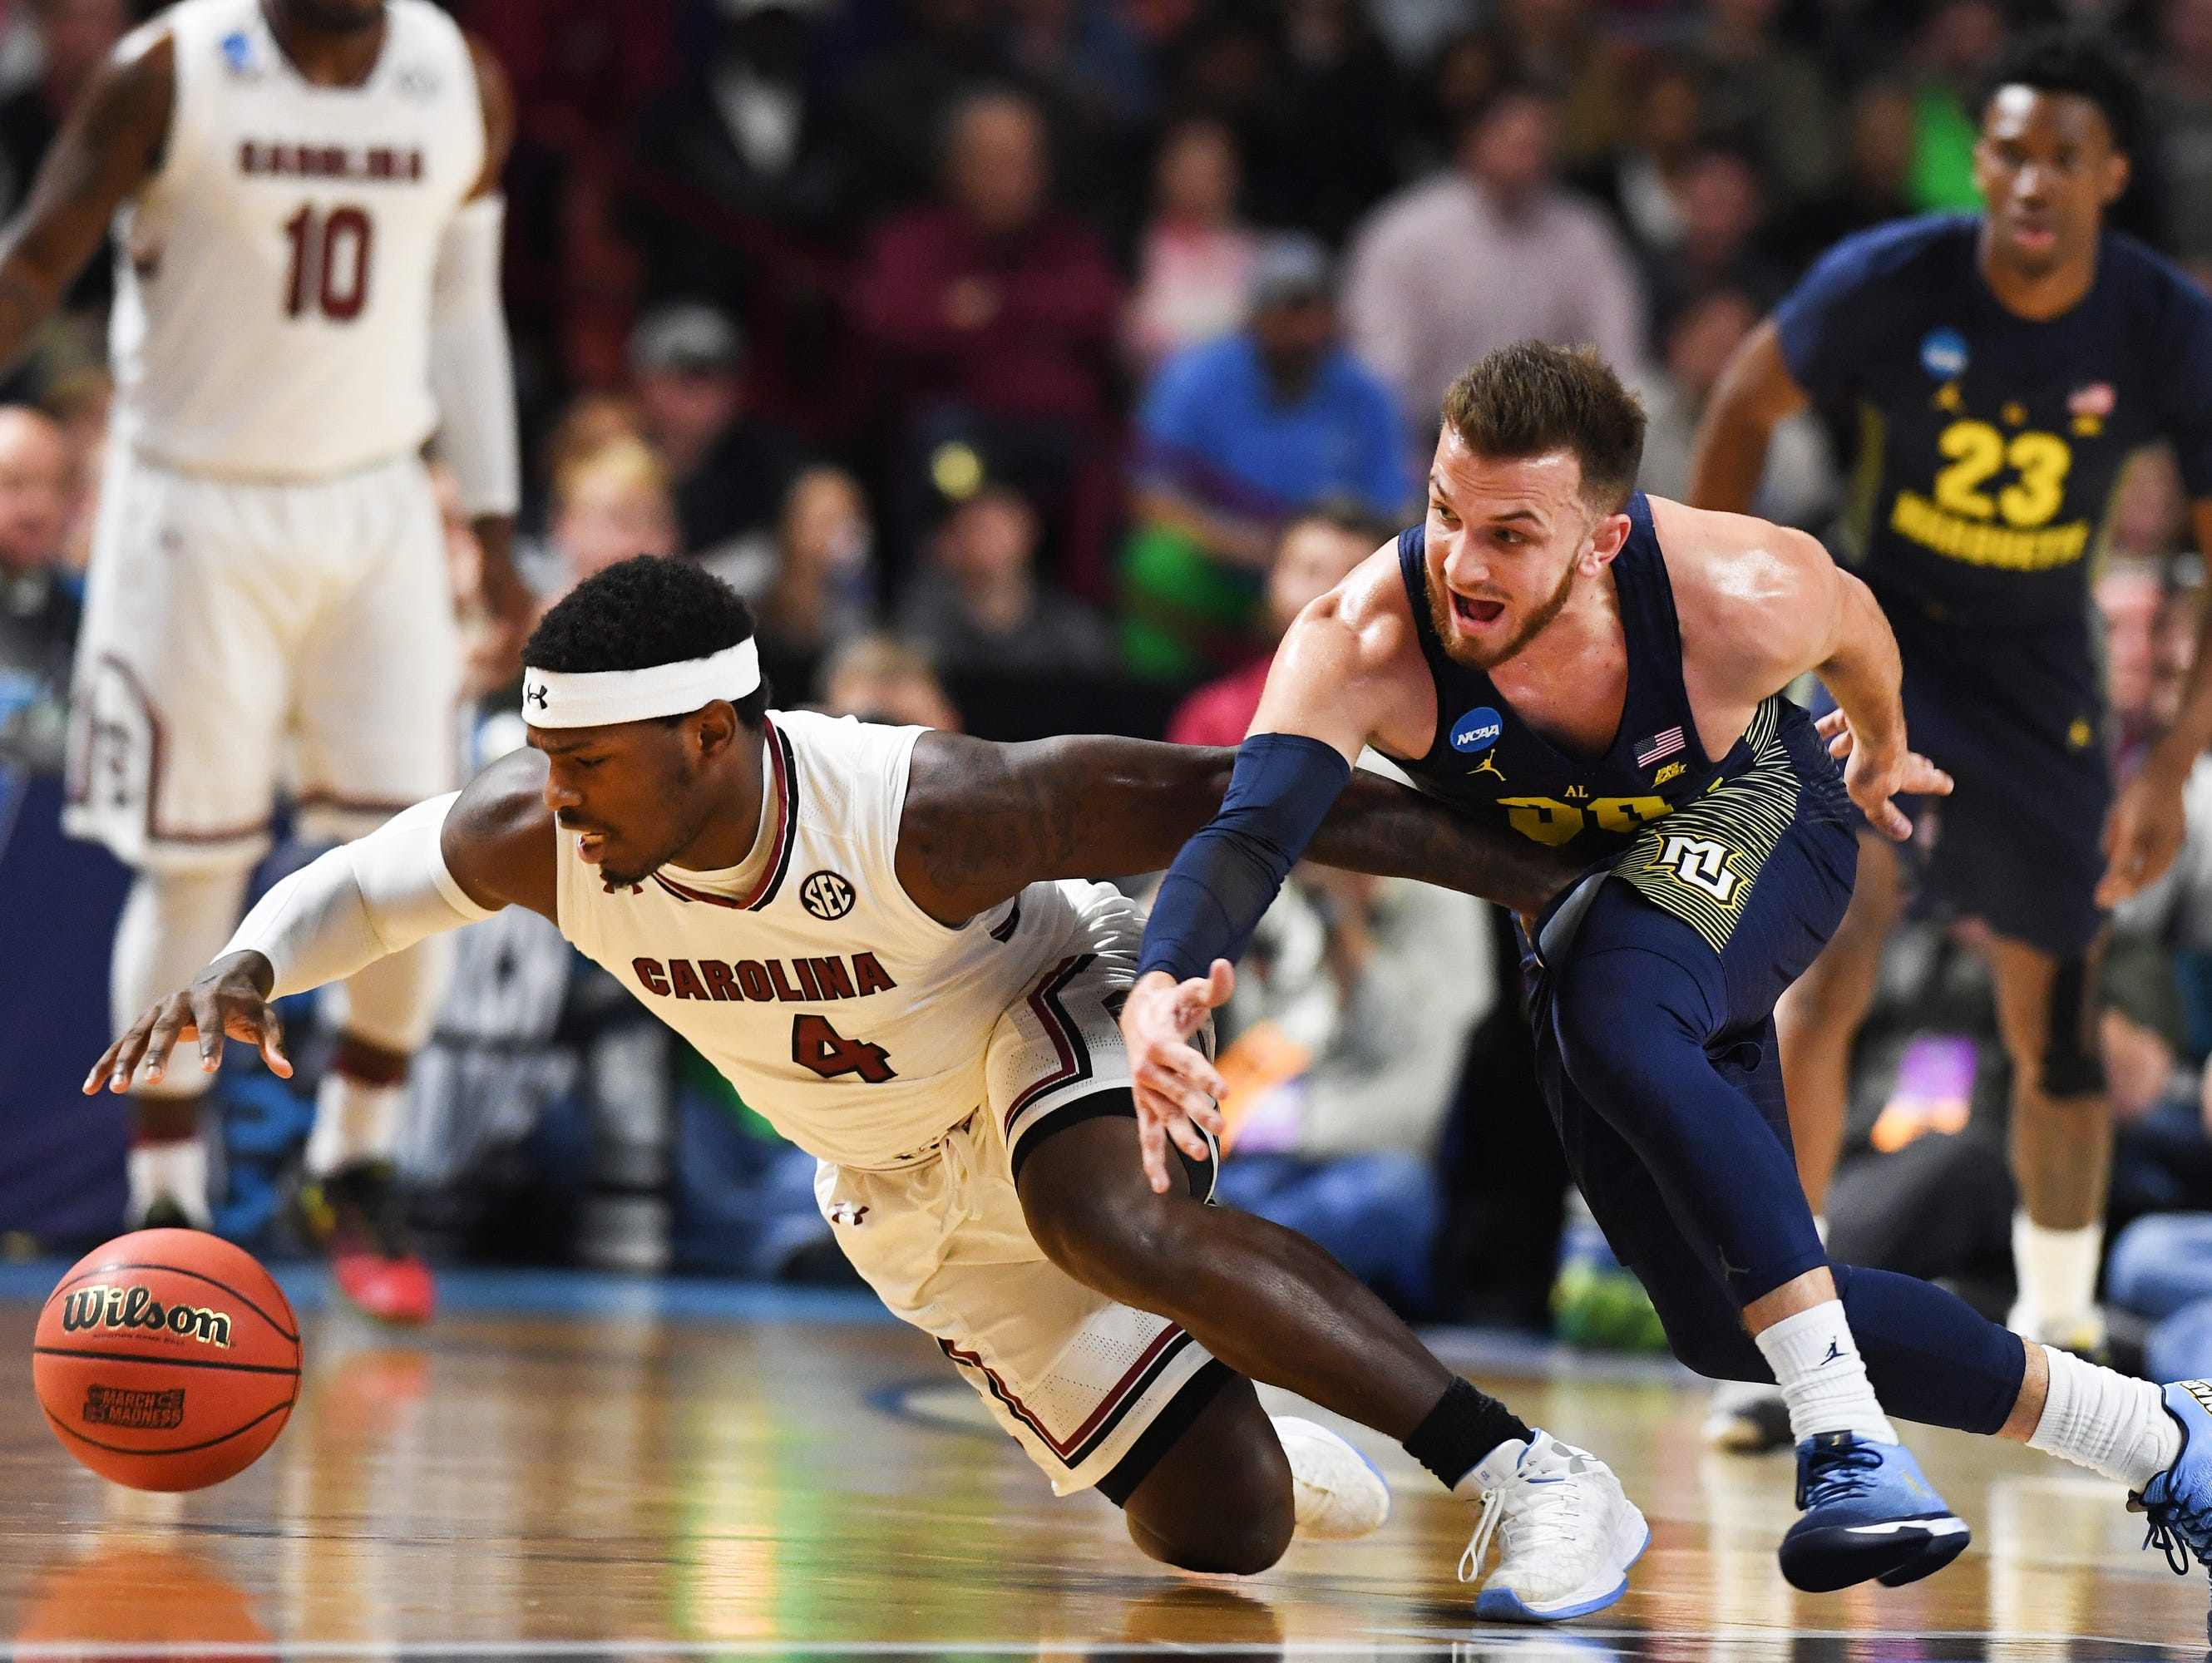 South Carolina guard Rakym Felder (4) and Marquette guard Andrew Rowsey (30) try to gain control of the ball during the 1st round of the NCAA Tournament at Bon Secours Wellness Arena in downtown Greenville on Friday, March 17, 2017.